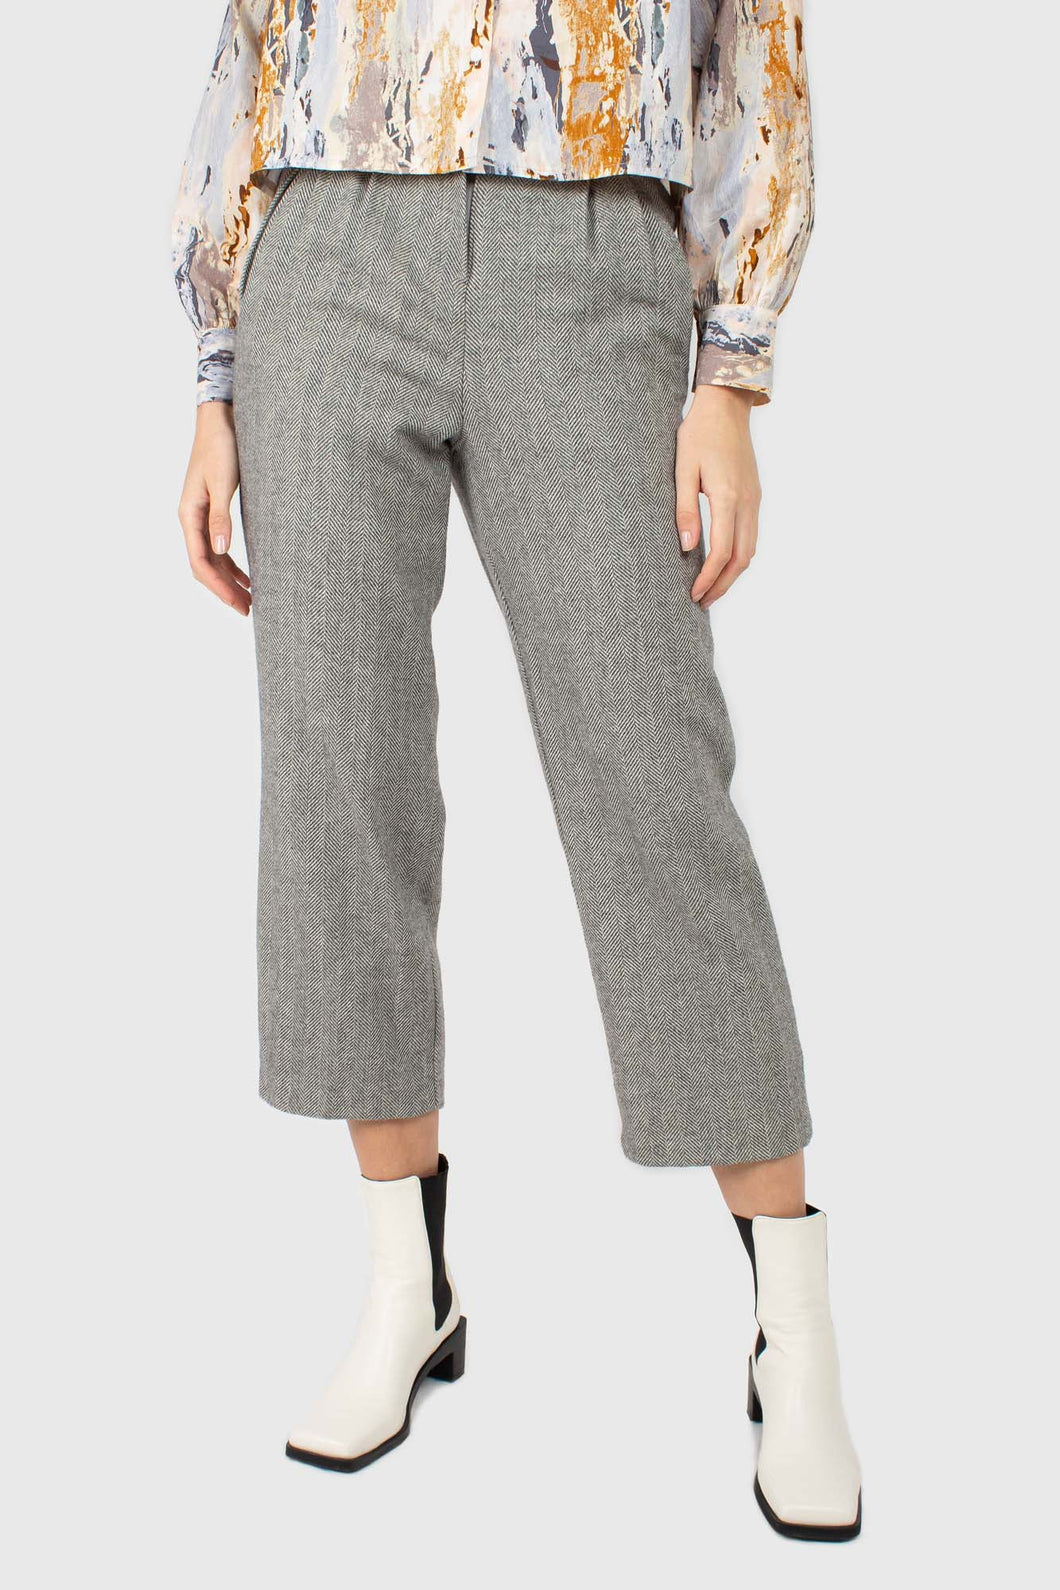 Grey herringbone belted wool trousers1